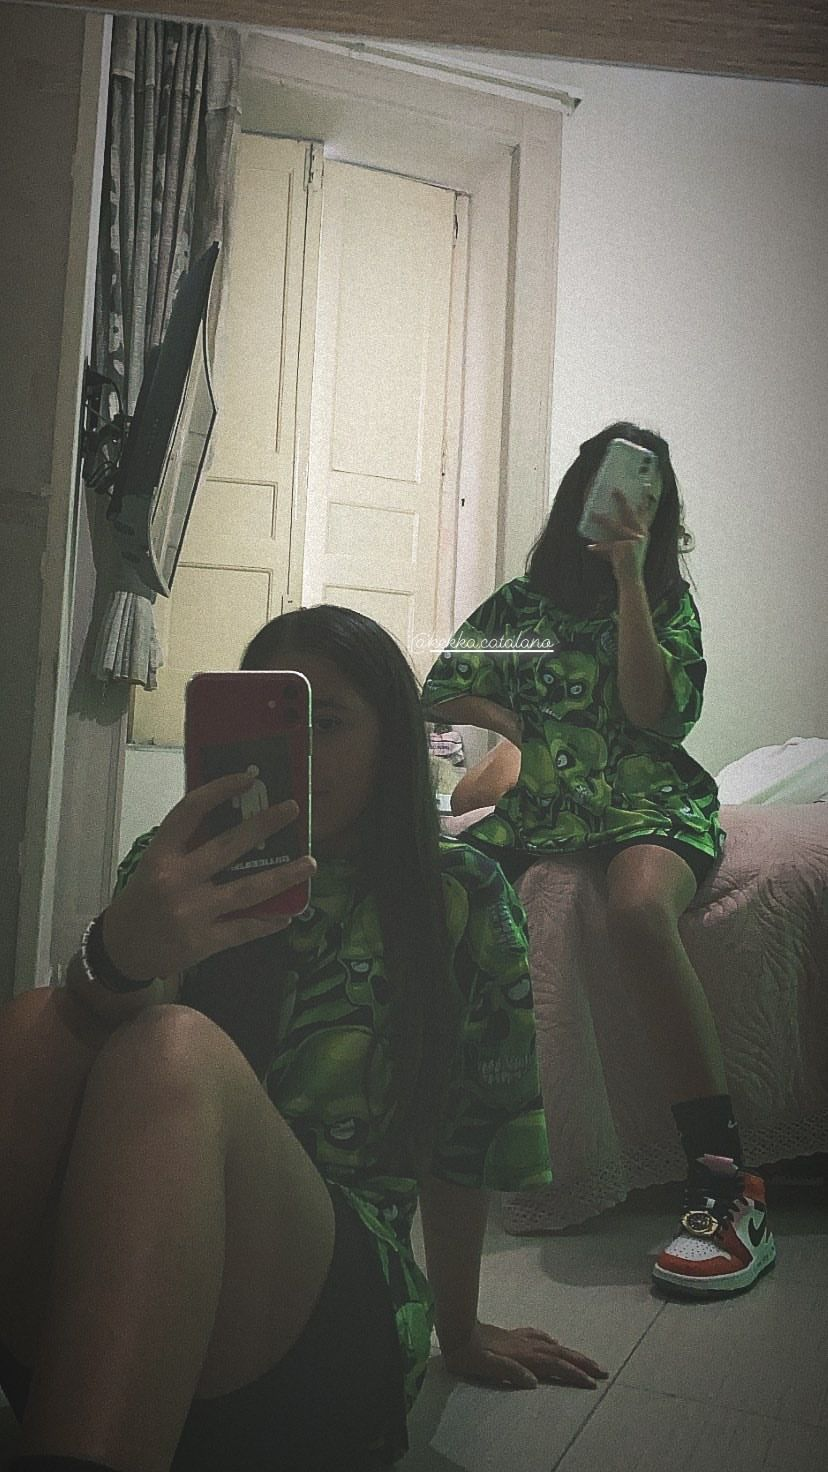 #bff #jordans #miglioreamica #stiles #outfit #green #black